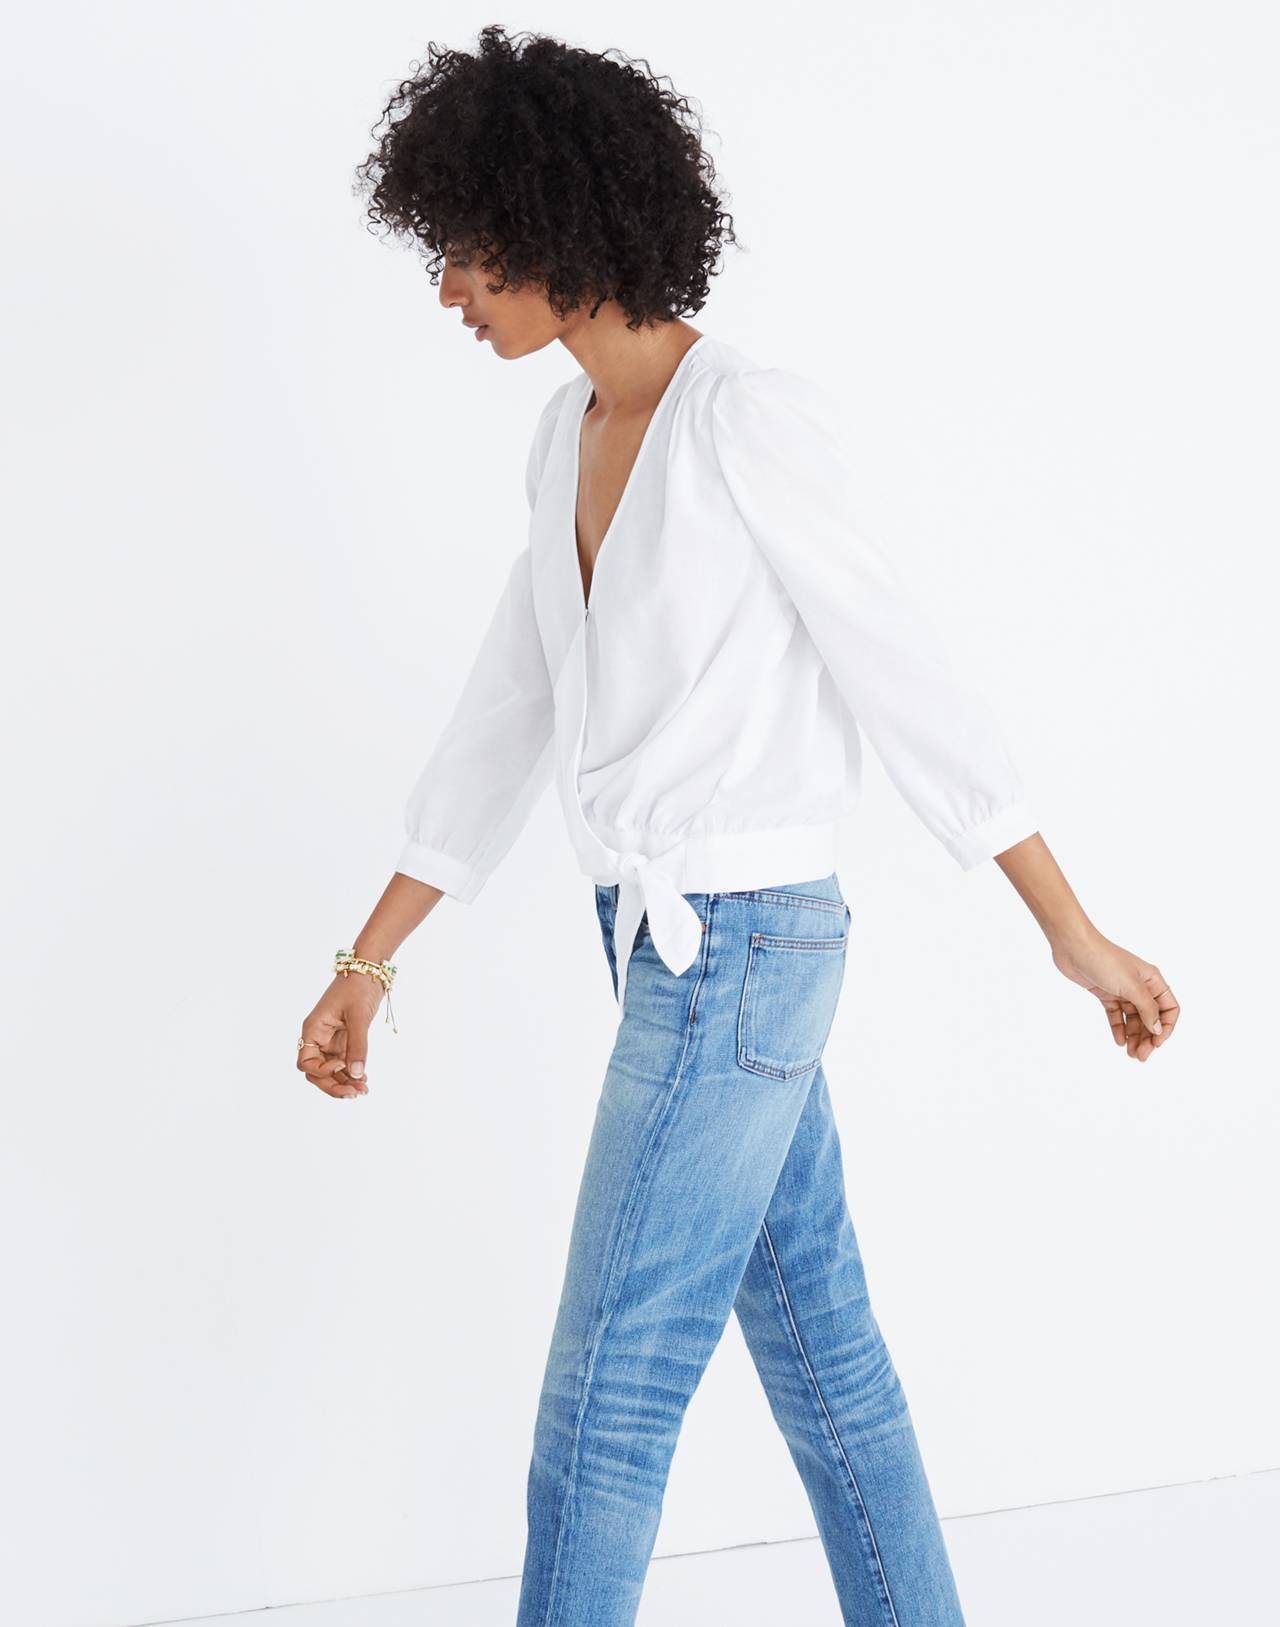 Wrap Top in Eyelet White in eyelet white image 2